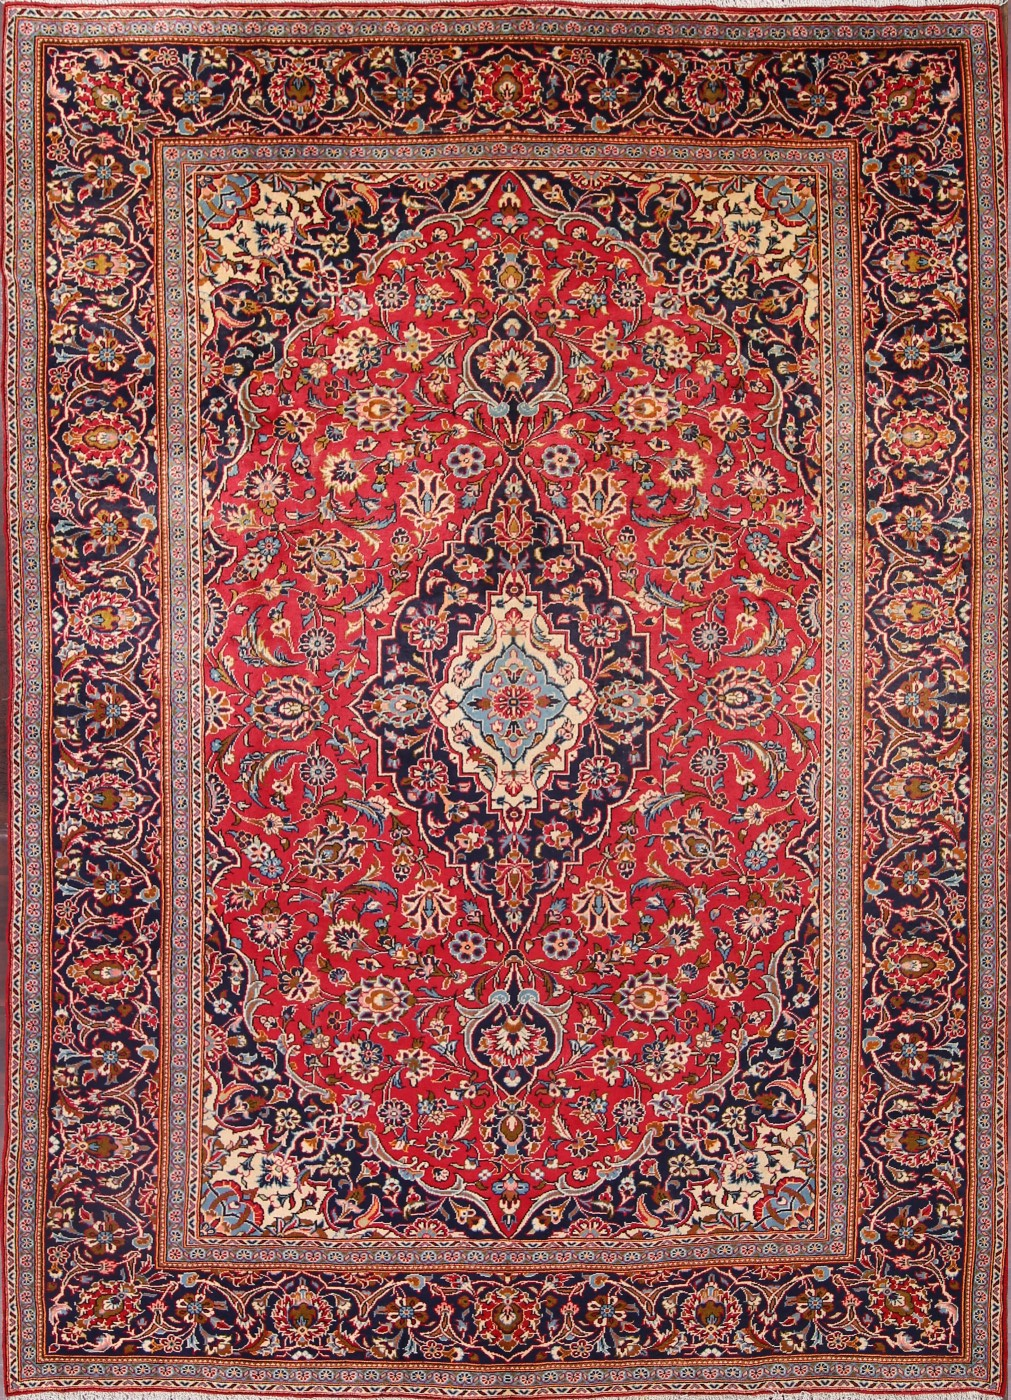 8'2 x 11'8 Hand-knotted Semi-Antique RedNavy Persian Kashan Oriental Area Rug 12980470 (1)